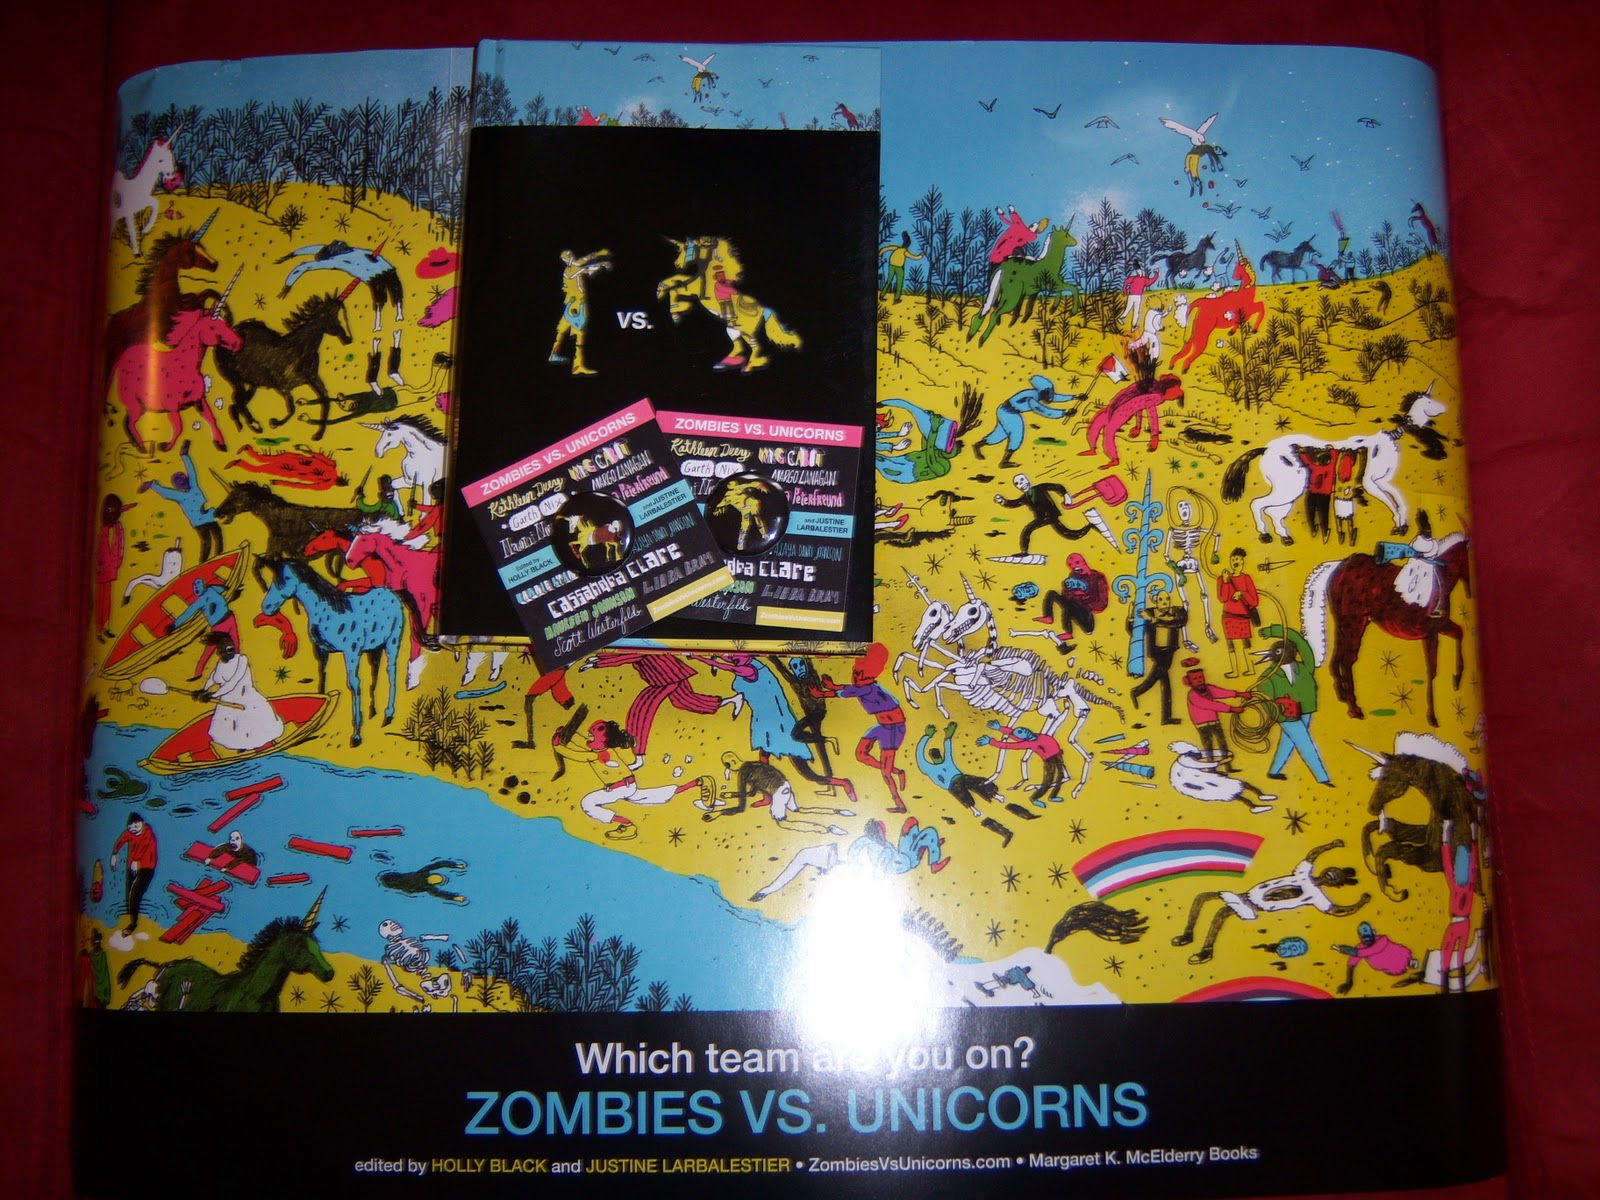 Simon Schuster Also Sent This Awesome Zombies Vs Unicorns Prize Pack With Two Poster And Four Buttons The Book Of Course